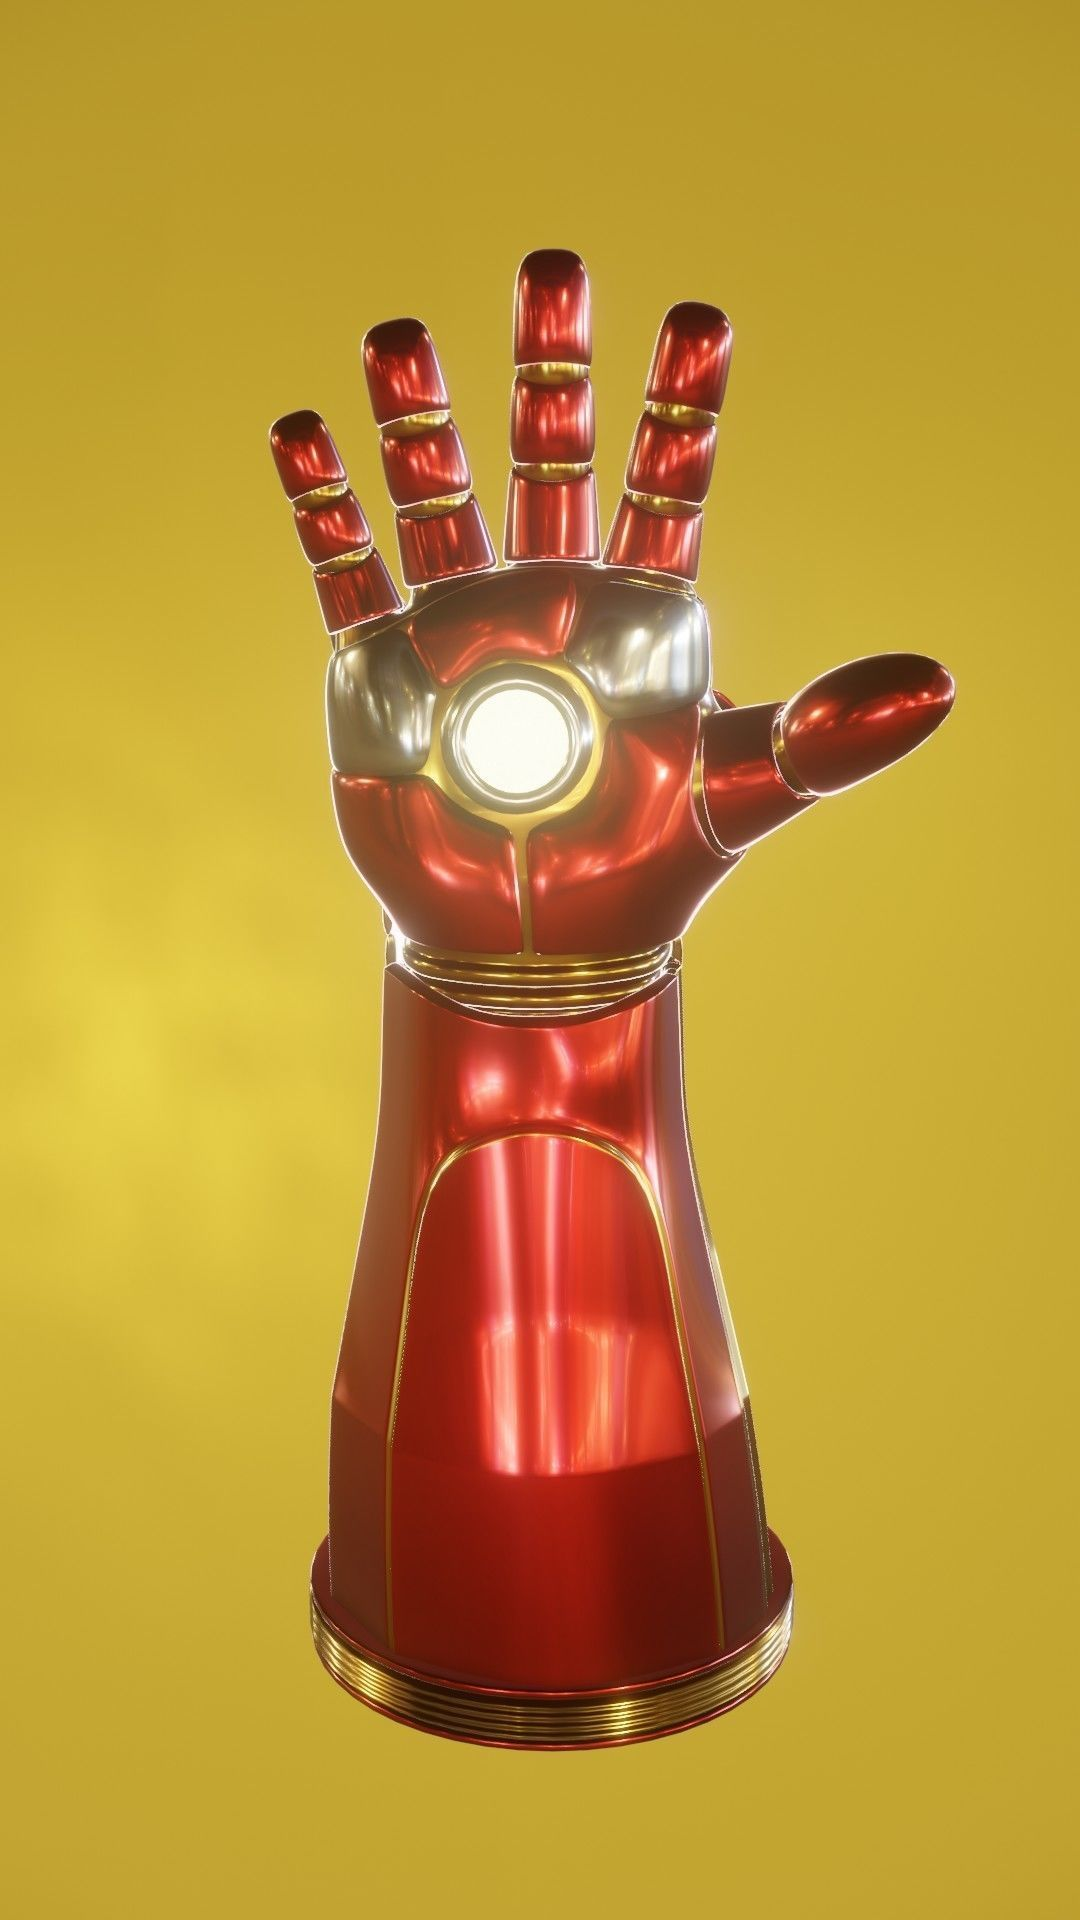 The infinity gauntlet is one of the most powerful objects in the universe. MJ Iron Man Infinity Gauntlet 3D model | CGTrader